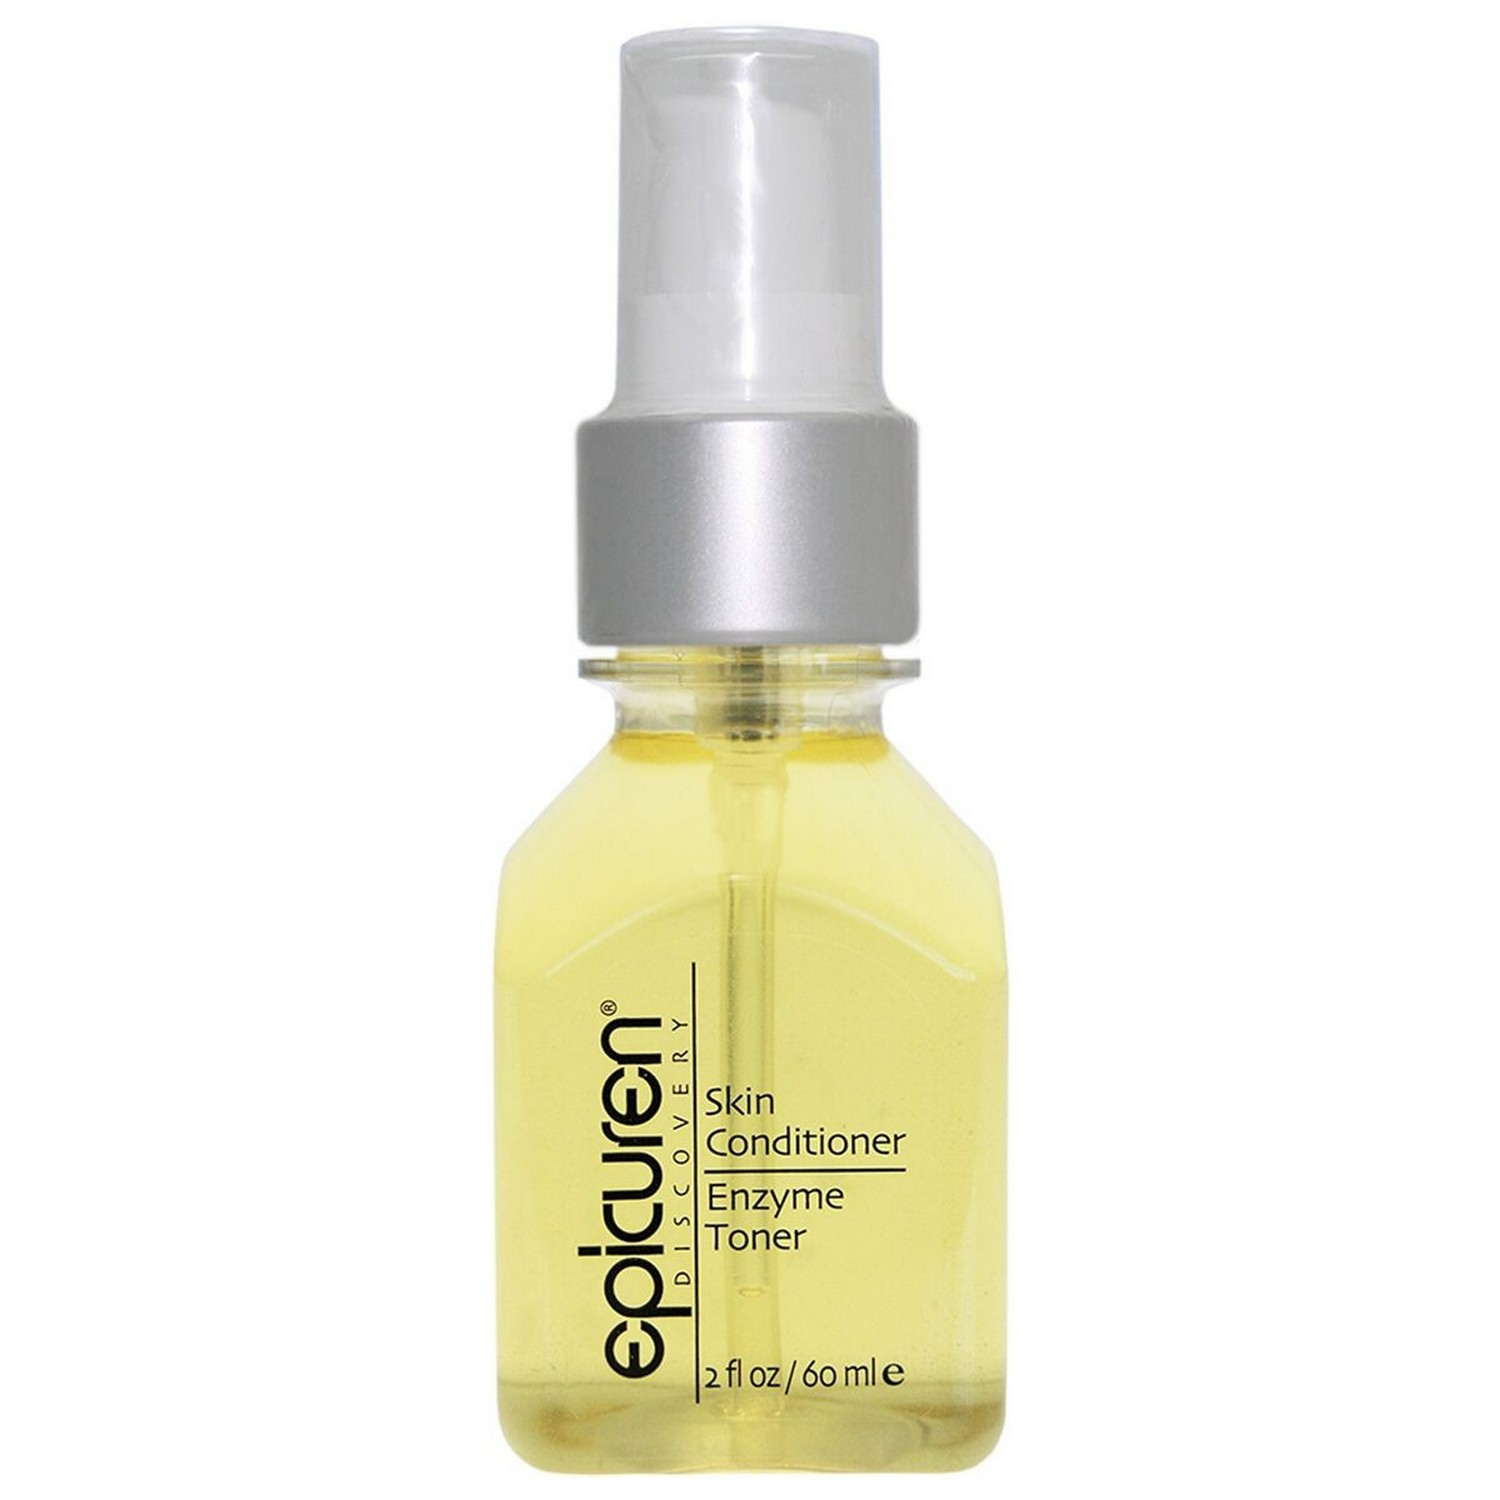 epicuren Discovery Skin Conditioner Enzyme Toner (2.0 fl oz / 60 ml)